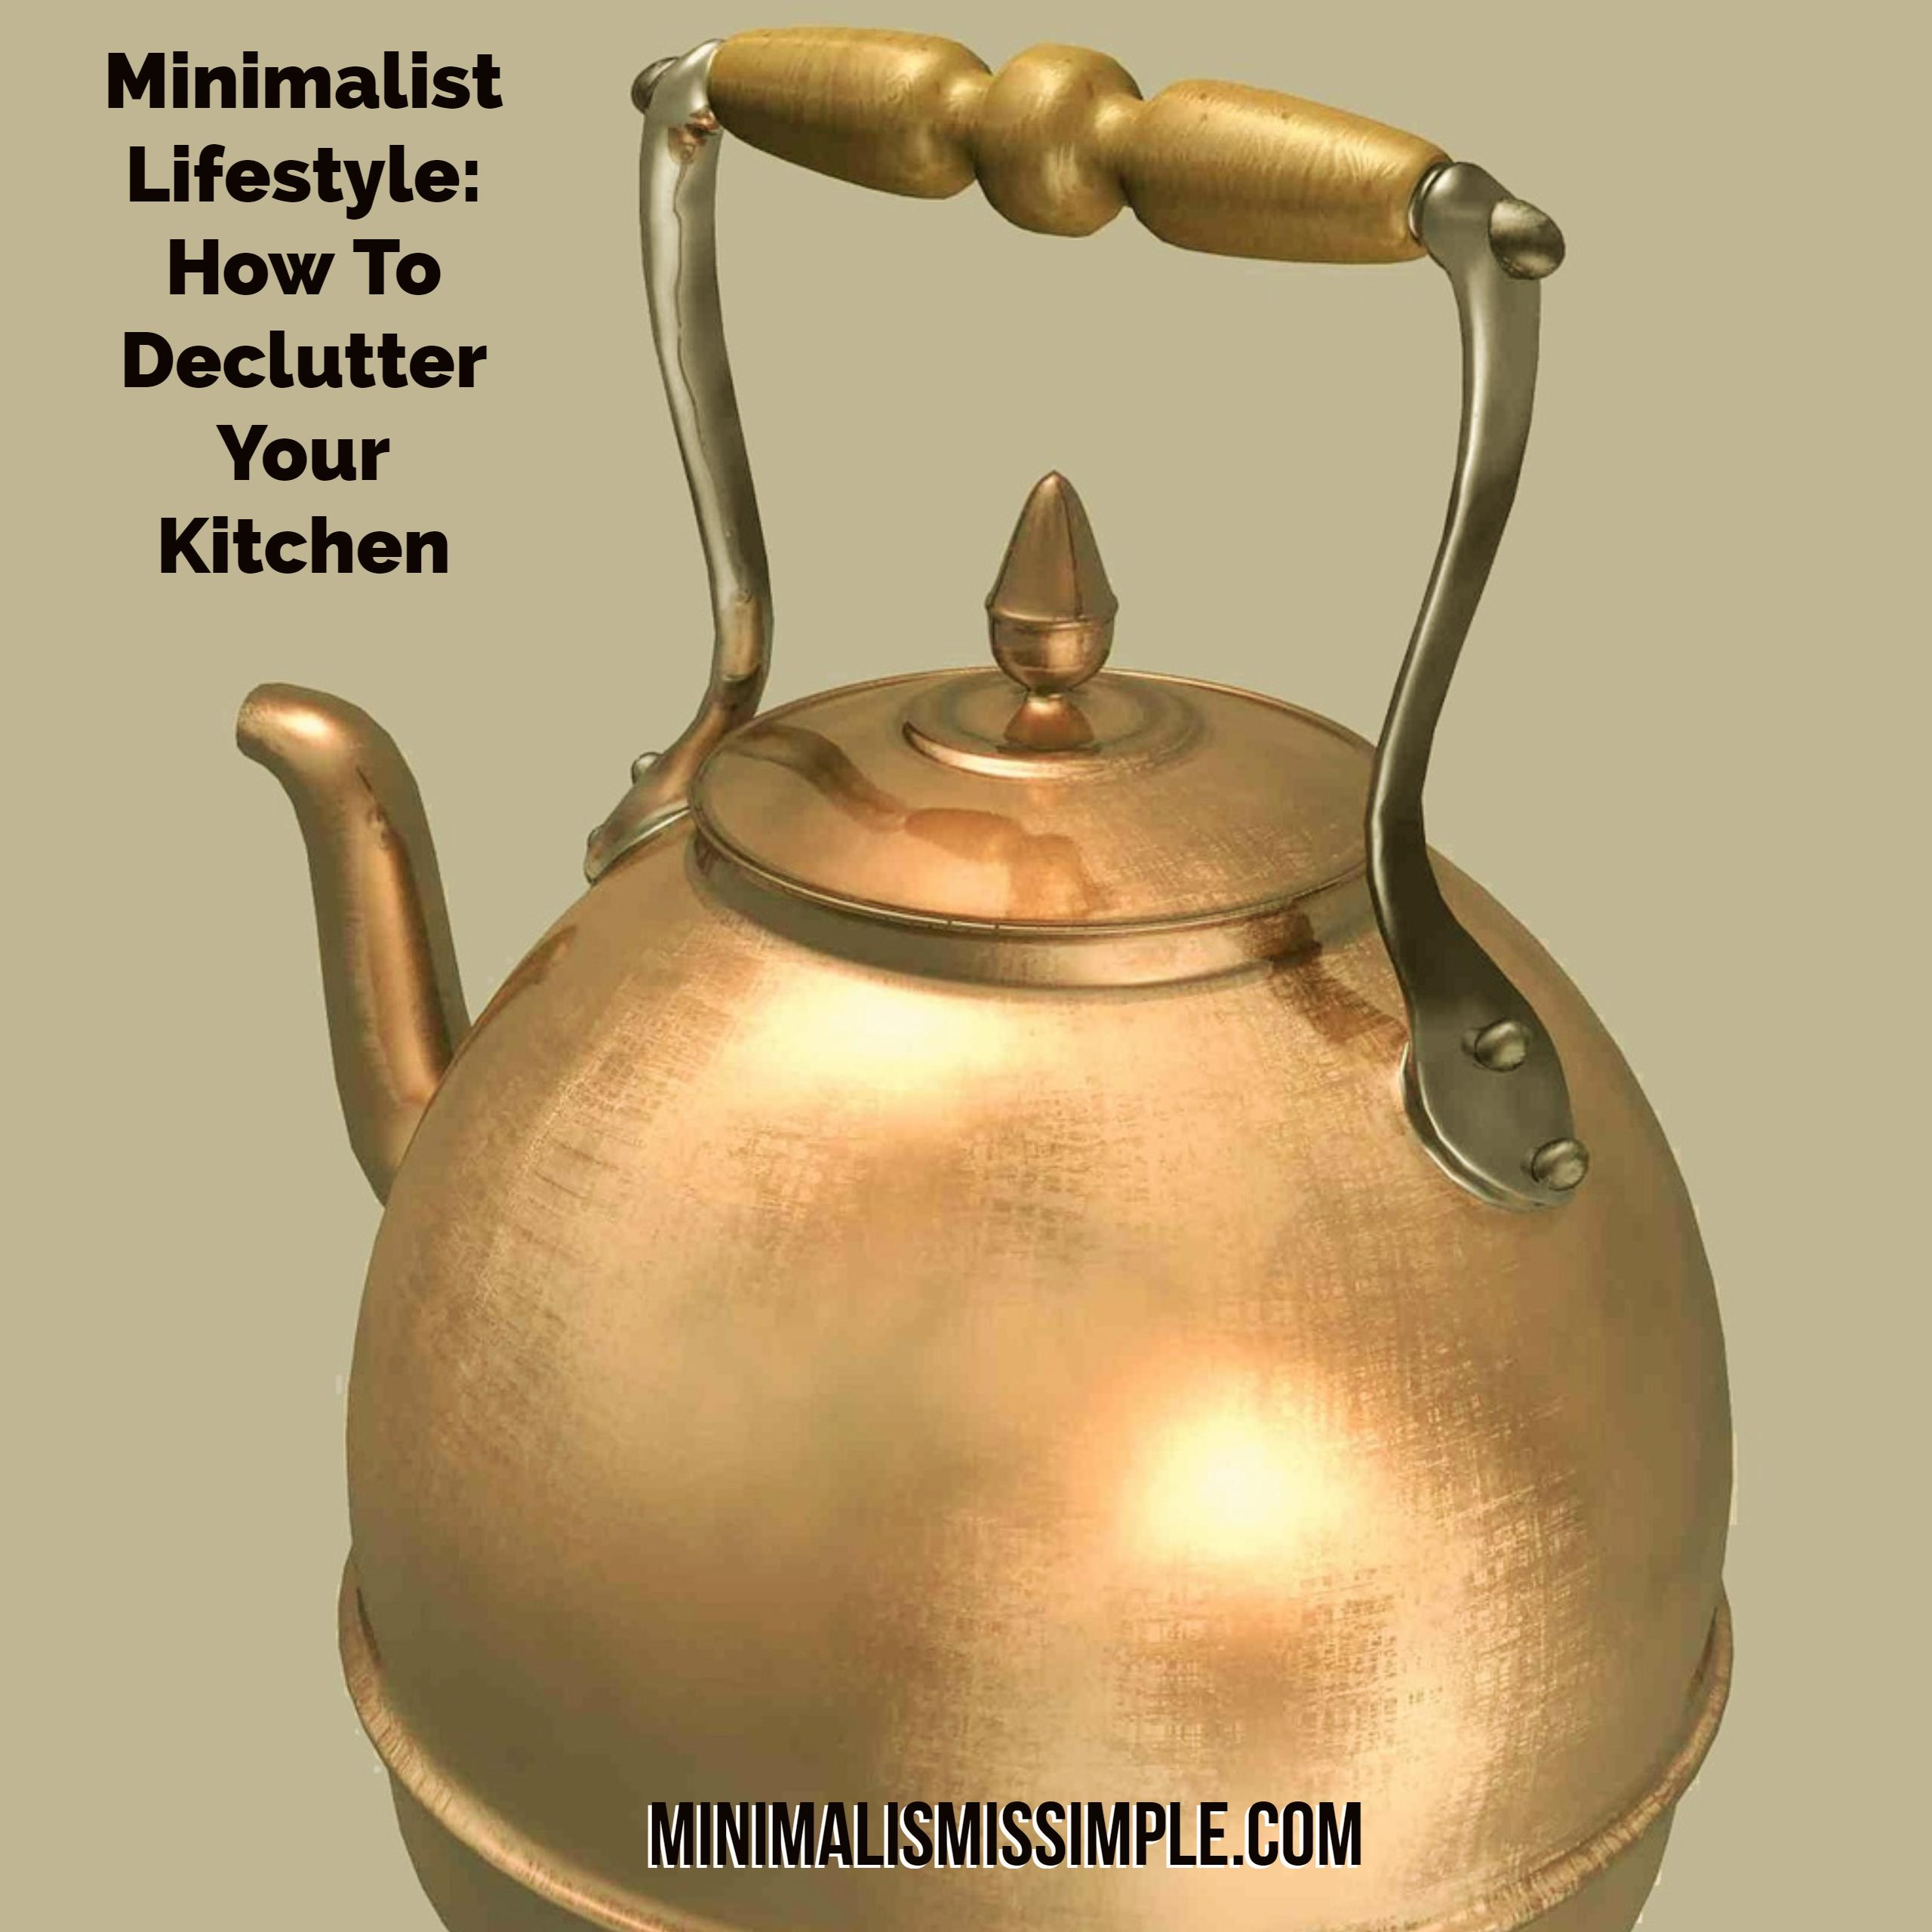 minimalist lifestyle how to declutter your kitchen minimalismissimple.com